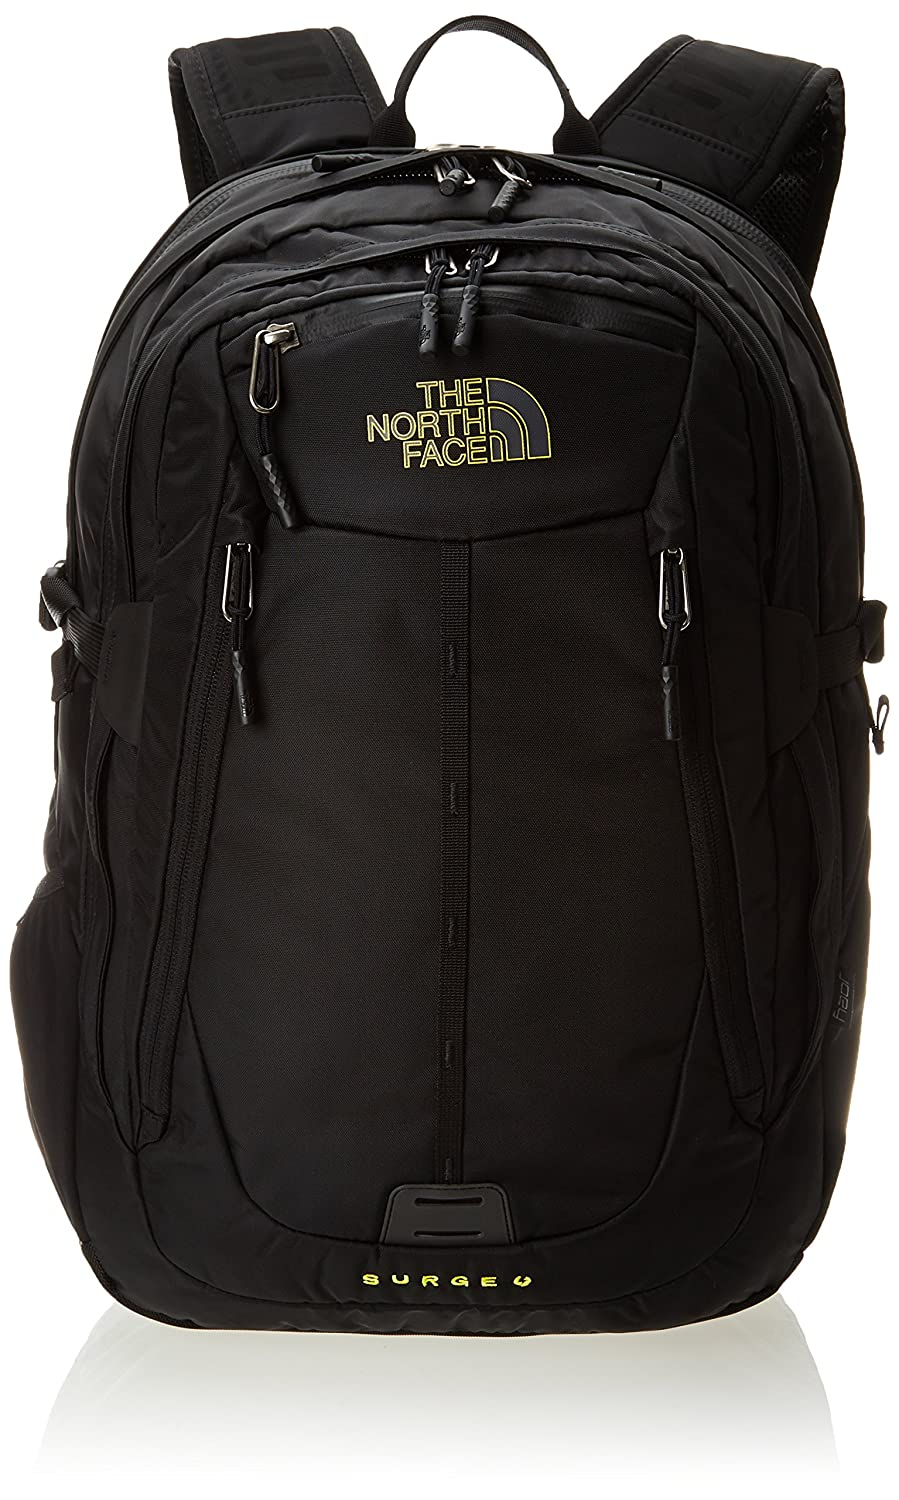 The North Face Surge Il Charged - Mochila, Color Negro, Talla única: Amazon.es: Deportes y aire libre